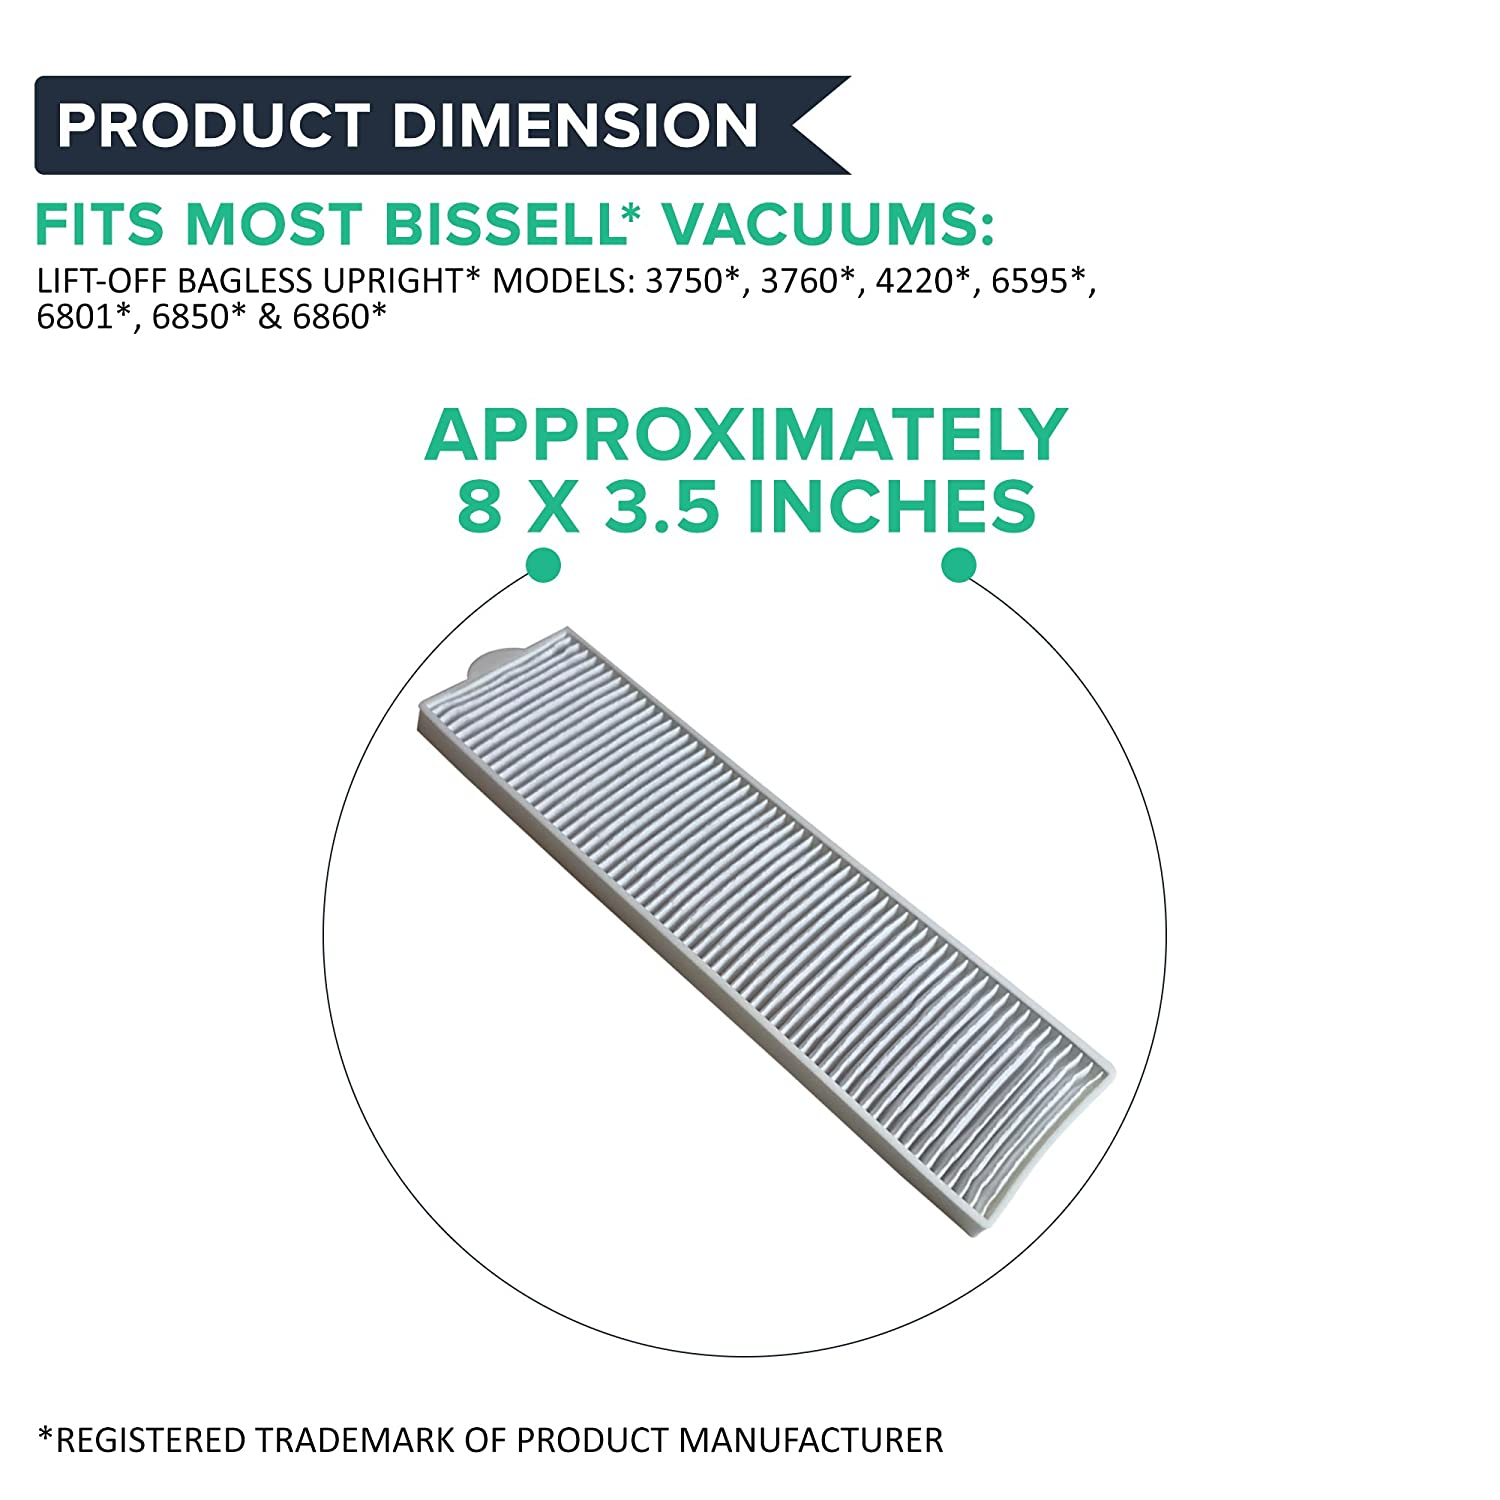 Think Crucial Fits Bissell LiftOff Bagless 2036608 Fits Vacs Momentum Velocity Bagless Upright Part 3091 2038093 203-6608 470856 FX HVF090 Bulk Crucial Vacuum Replacement Filter Parts Compatible with Bissell Filter 8 14 HEPA Style 4 Pack